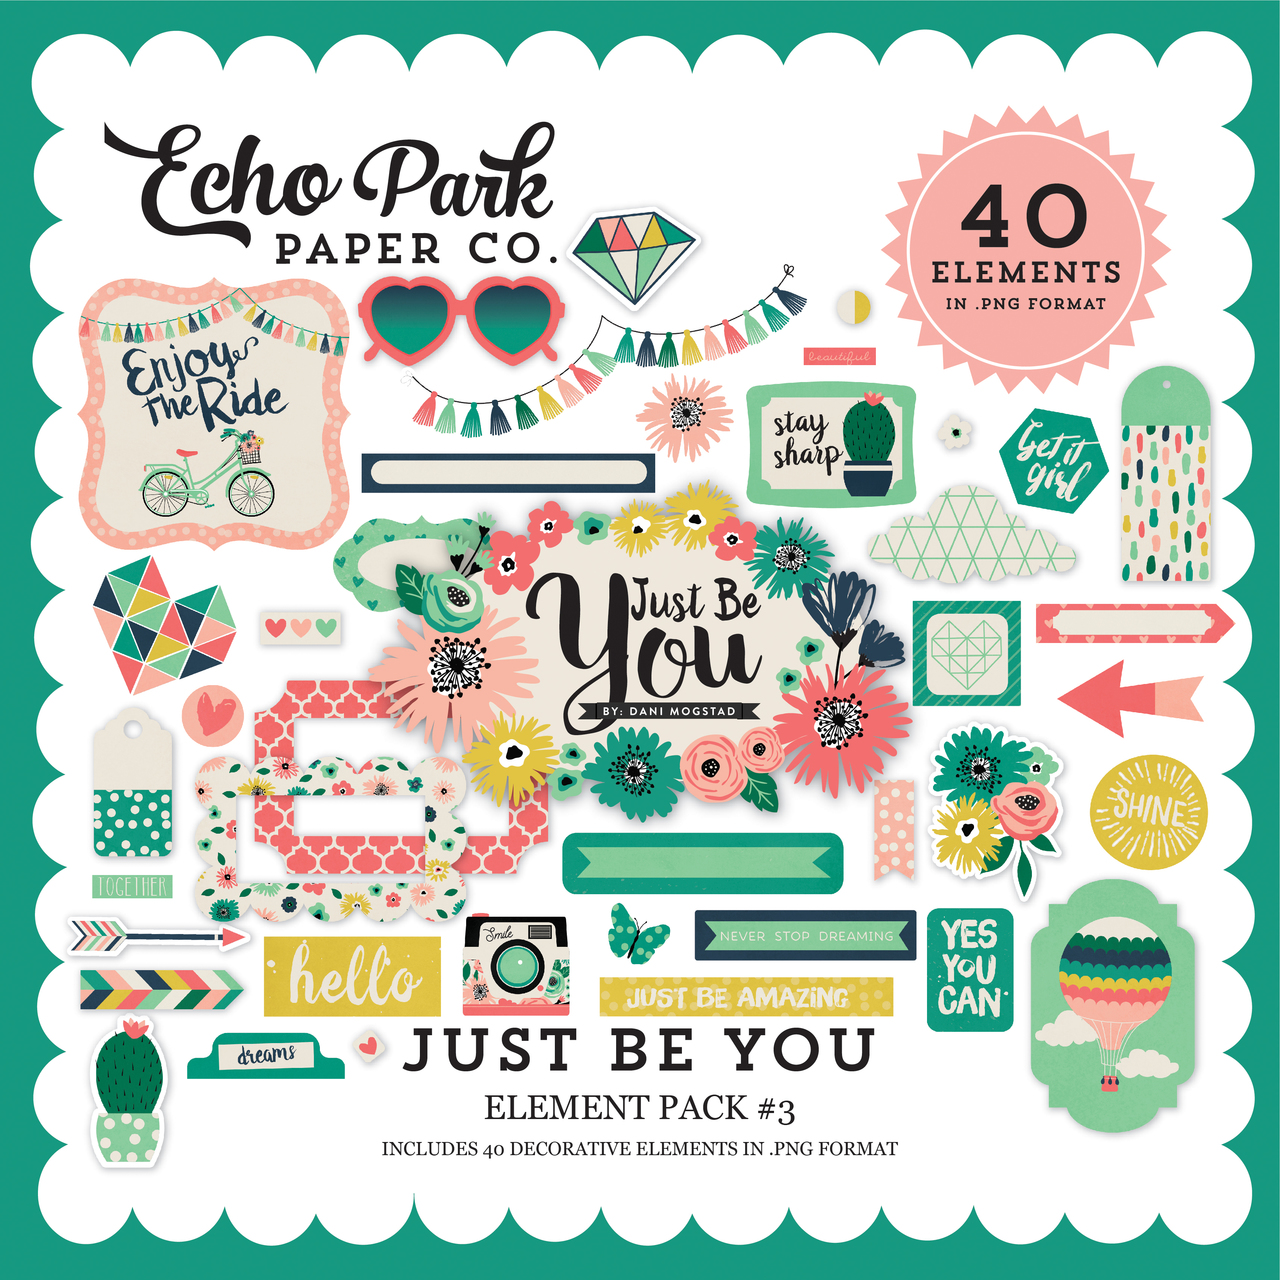 Just Be You Element Pack #3